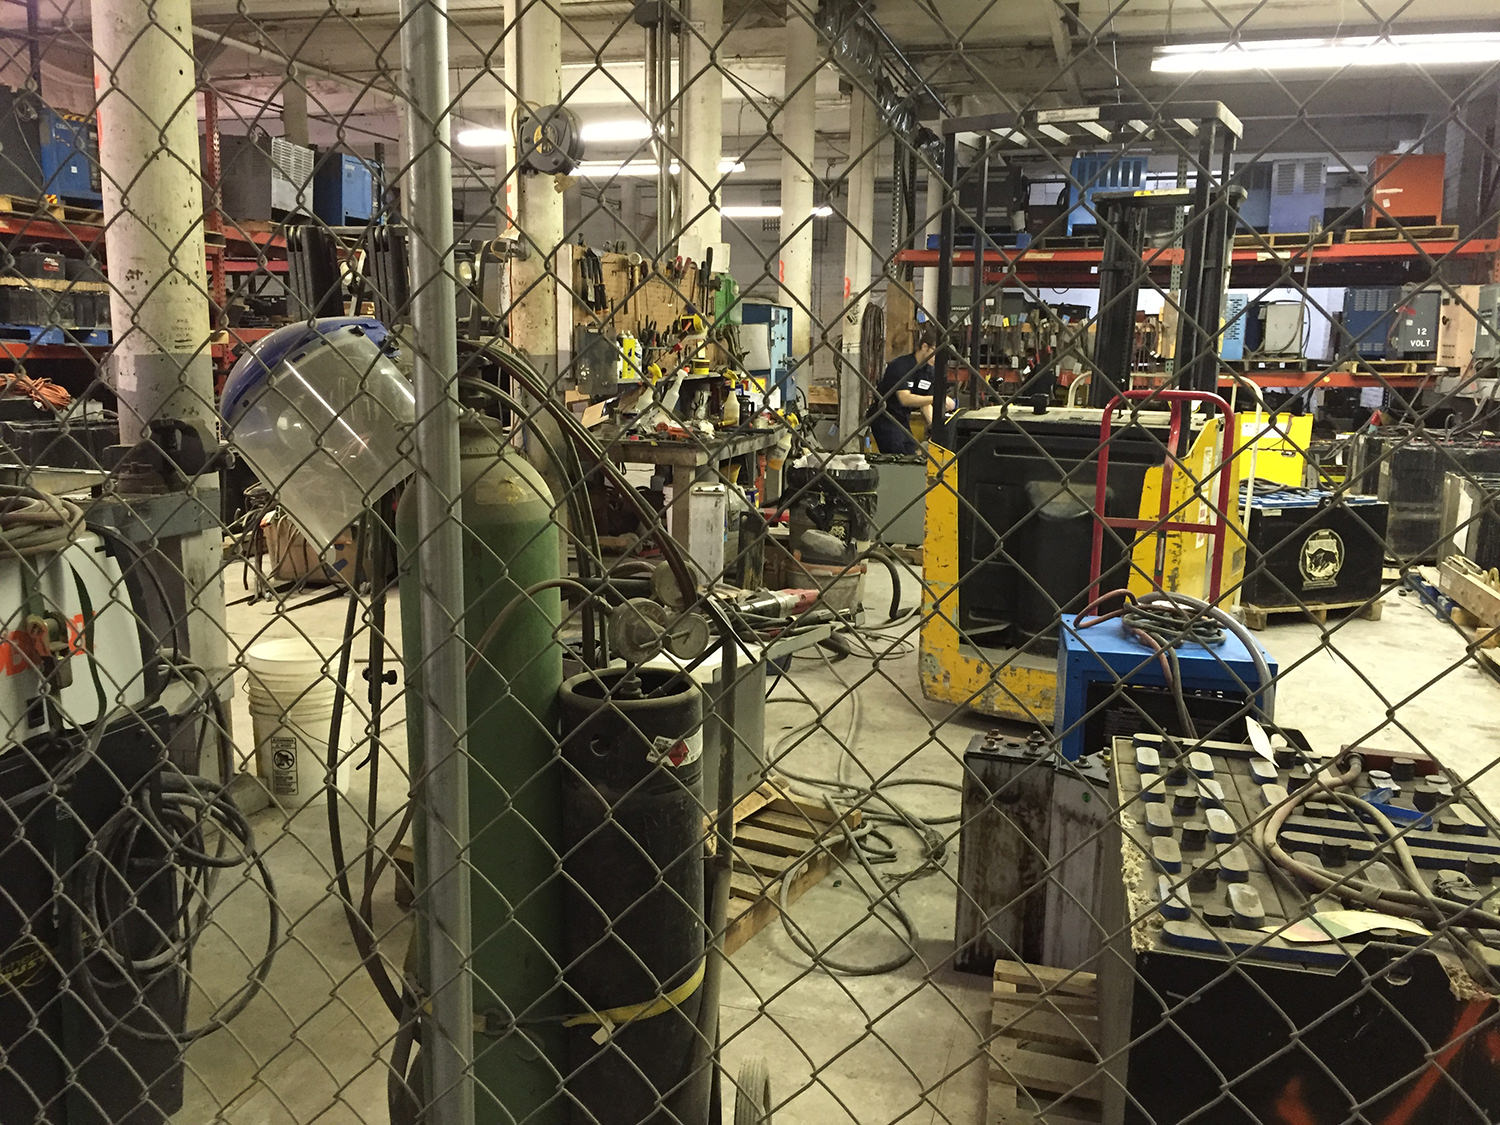 New England Battery's service facility will survey your used industrial battery and determine if we can recondition it to extend it's useful life.